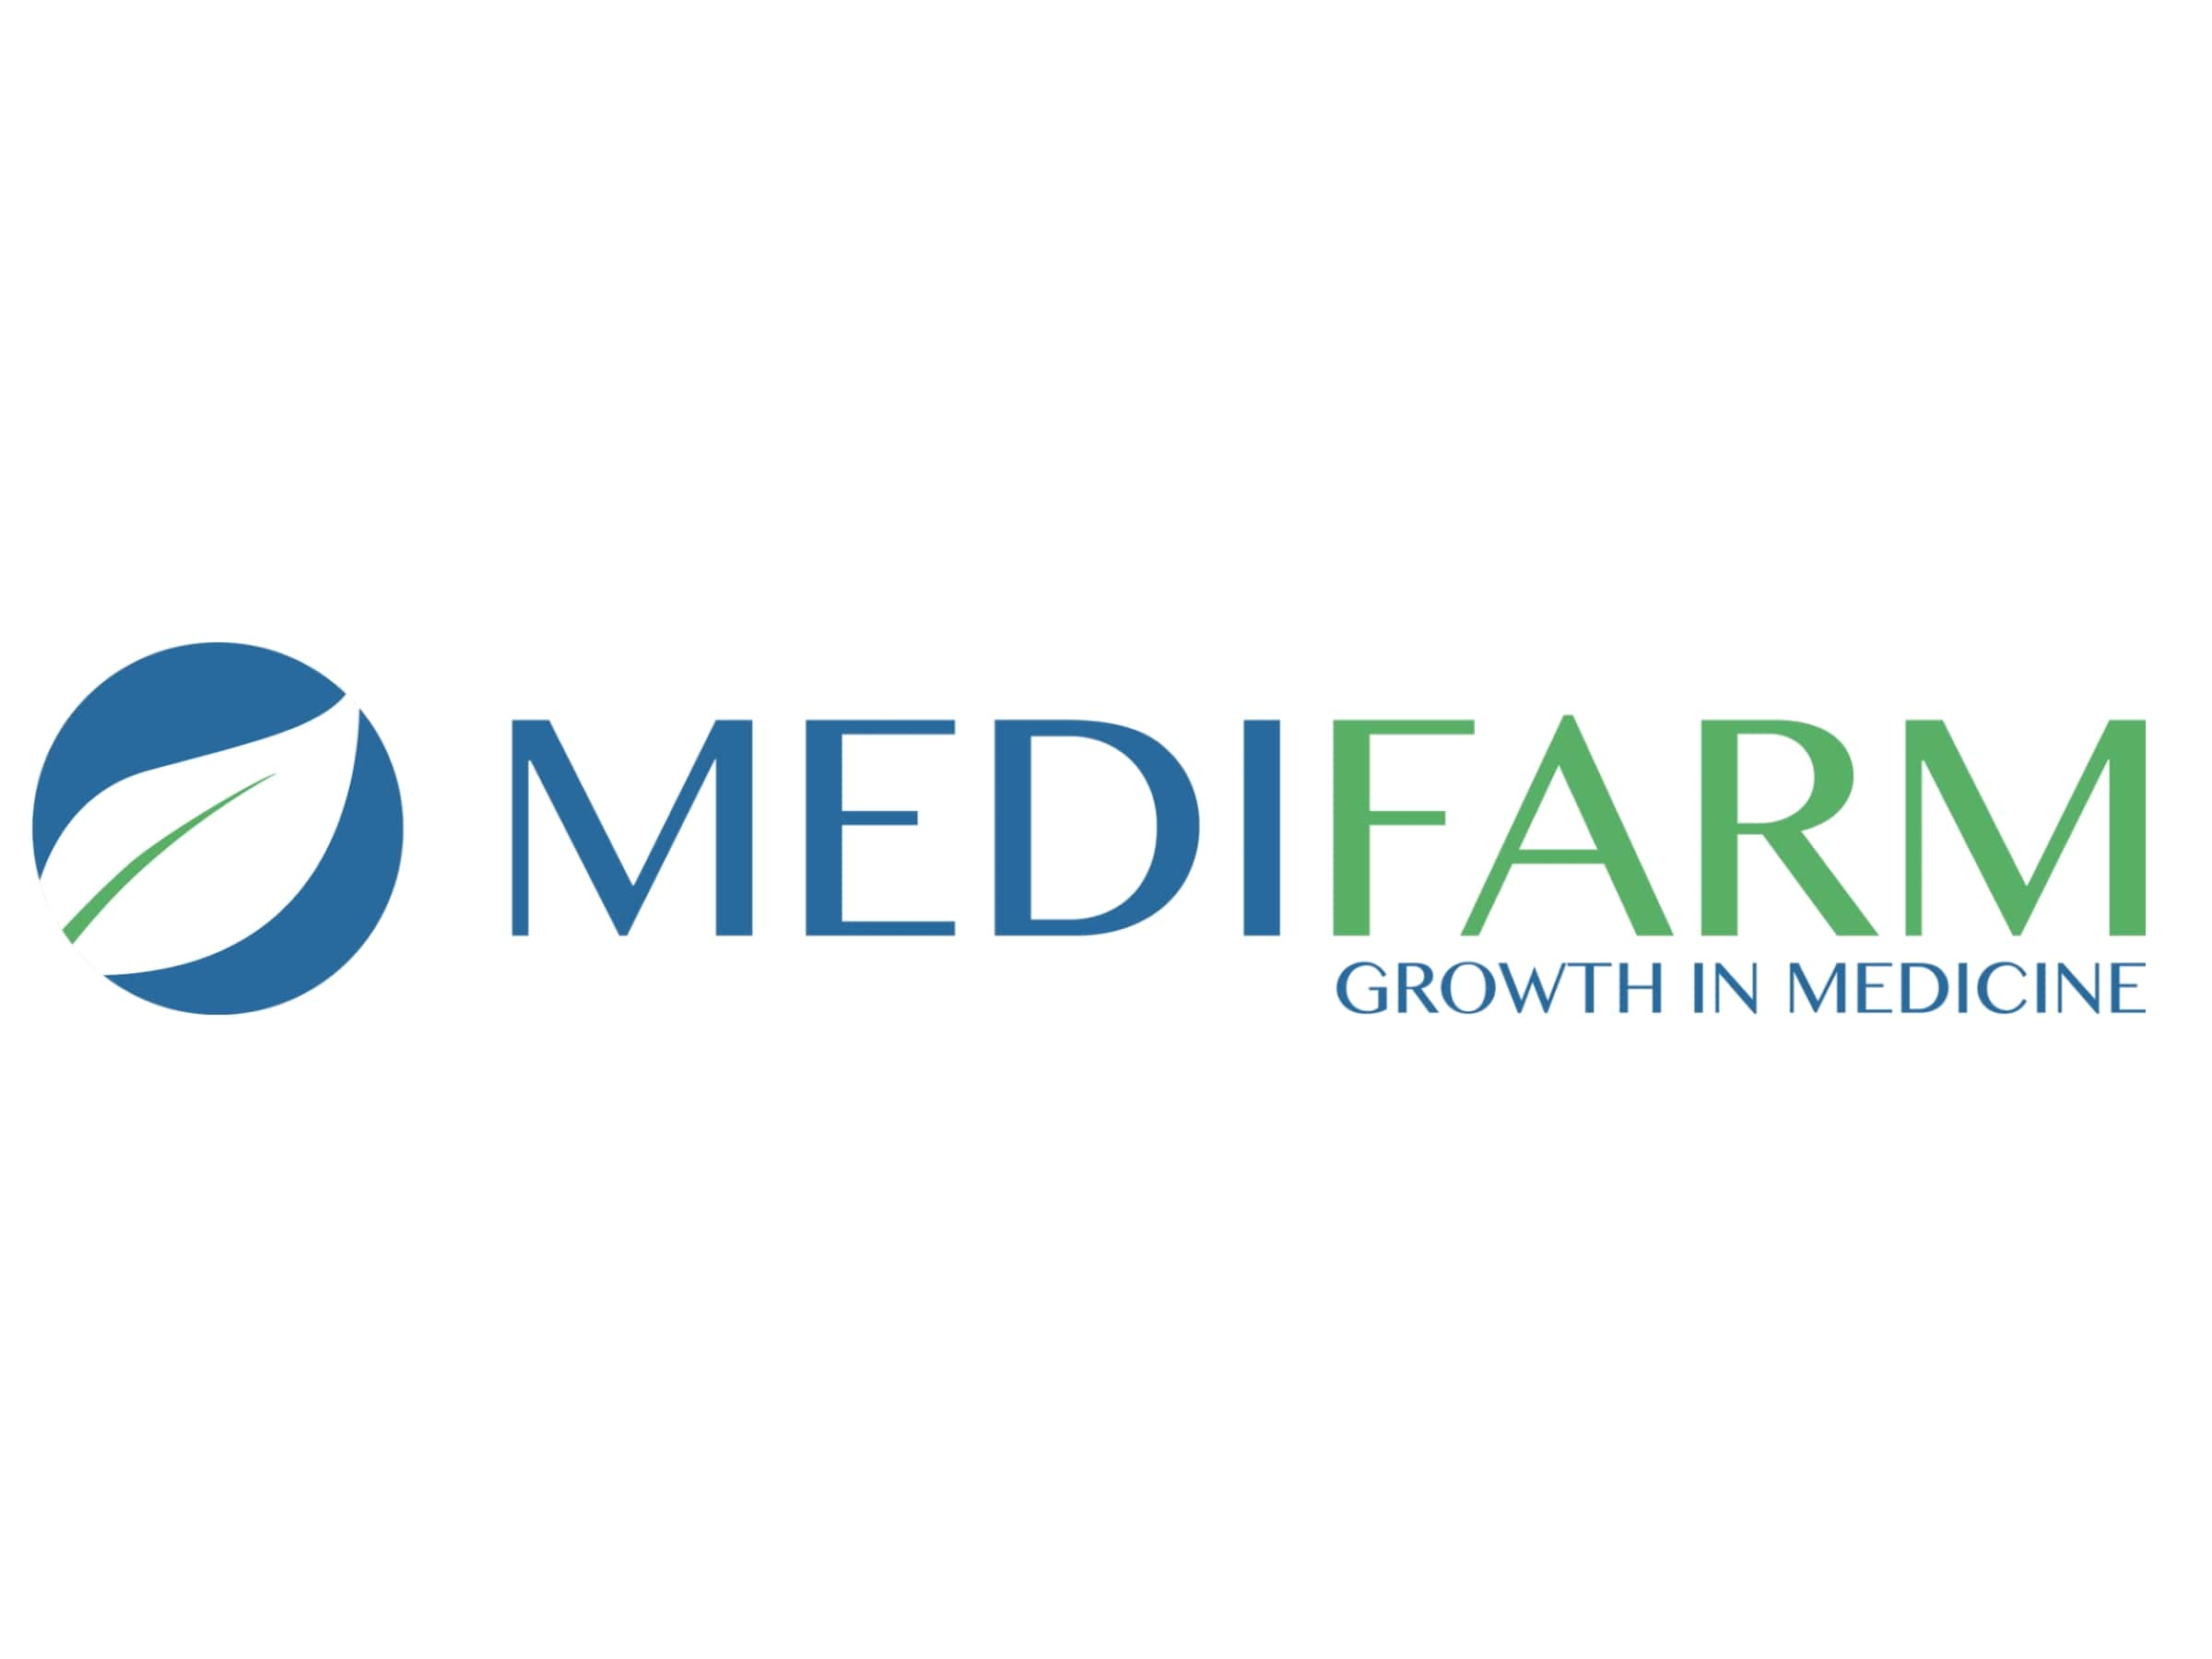 MEDIFARM Pty Ltd